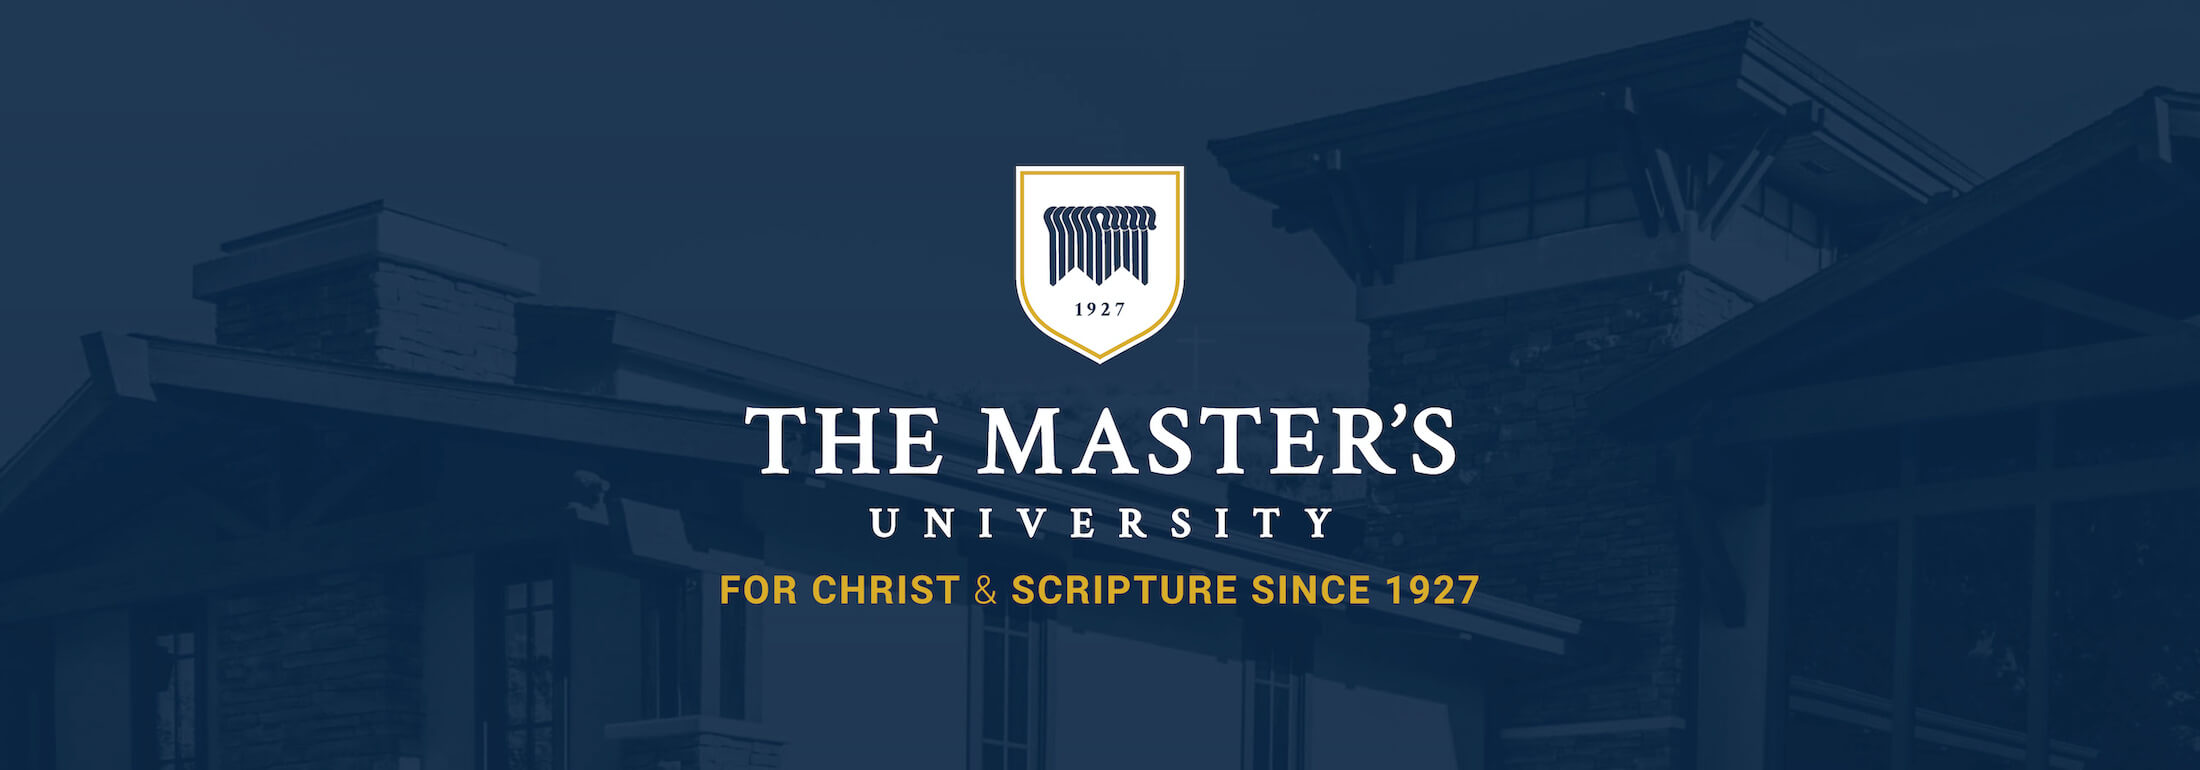 For Christ & Scripture Since 1927